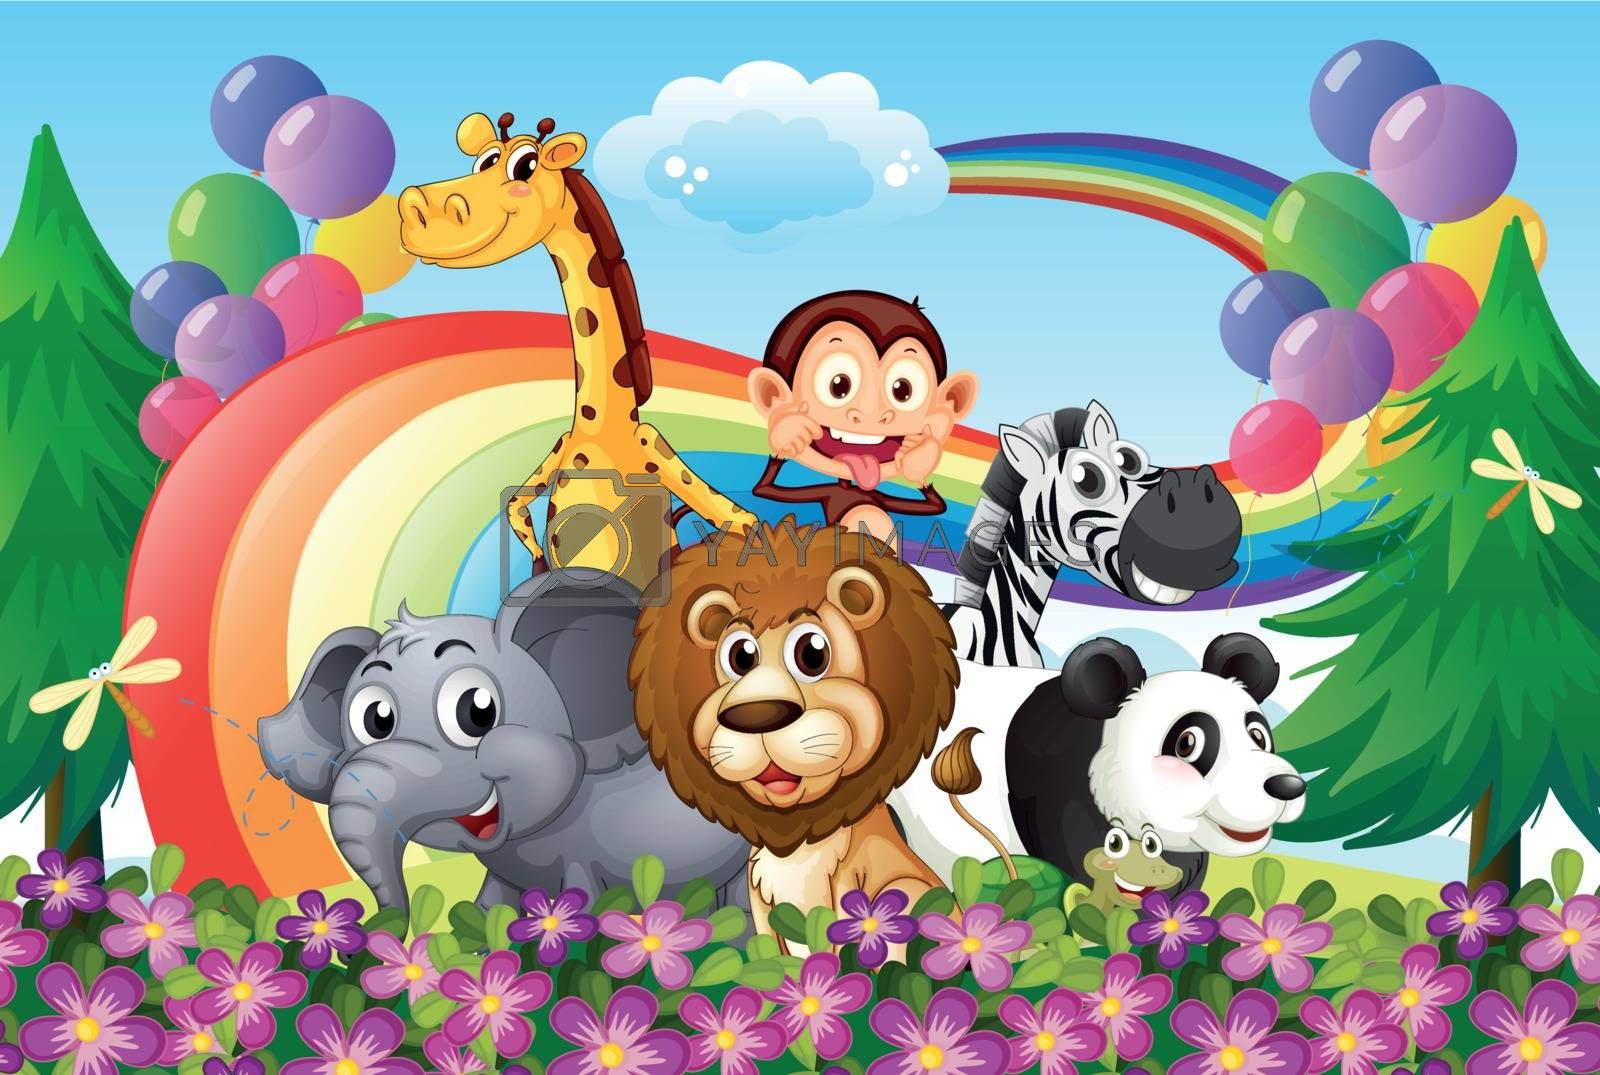 Illustration of a group of animals at the hilltop with a rainbow and balloons